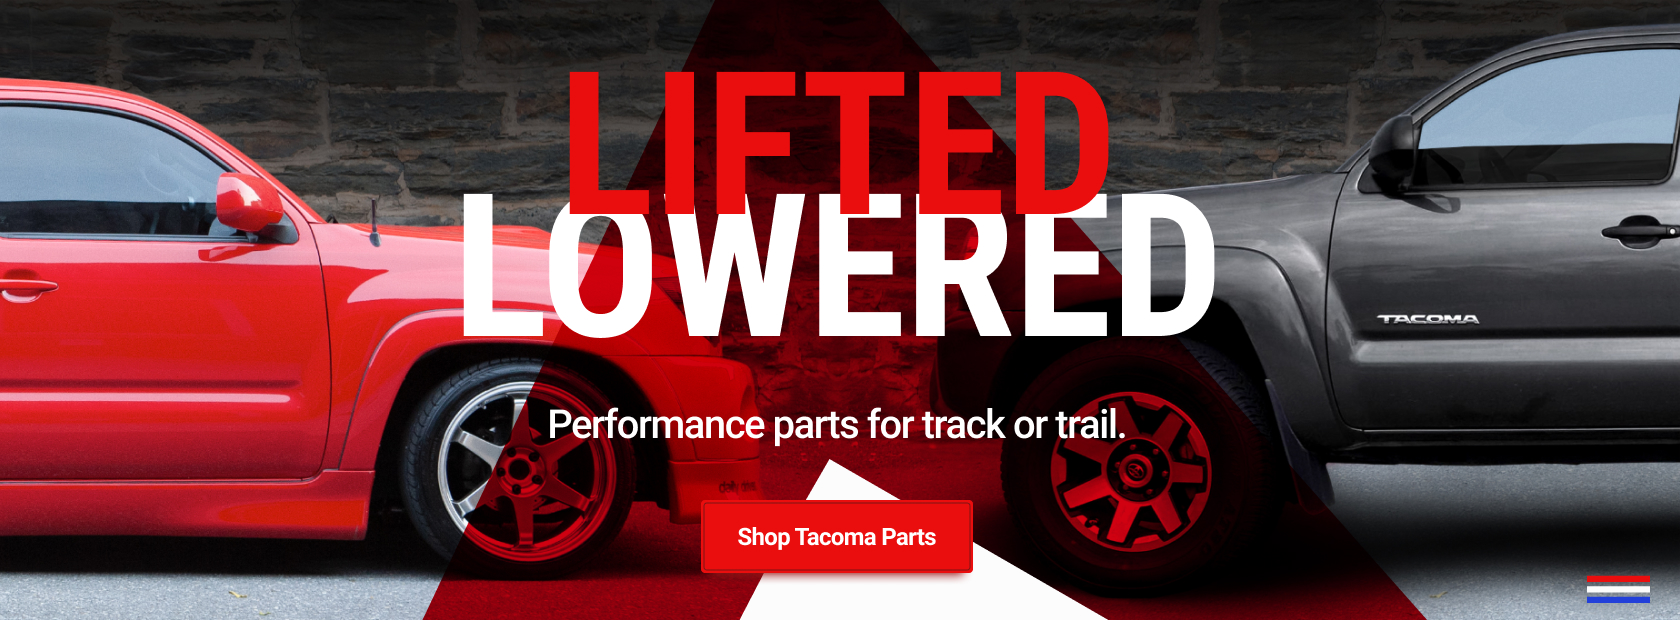 Lifted or lowered - we have performance parts for track or trail.